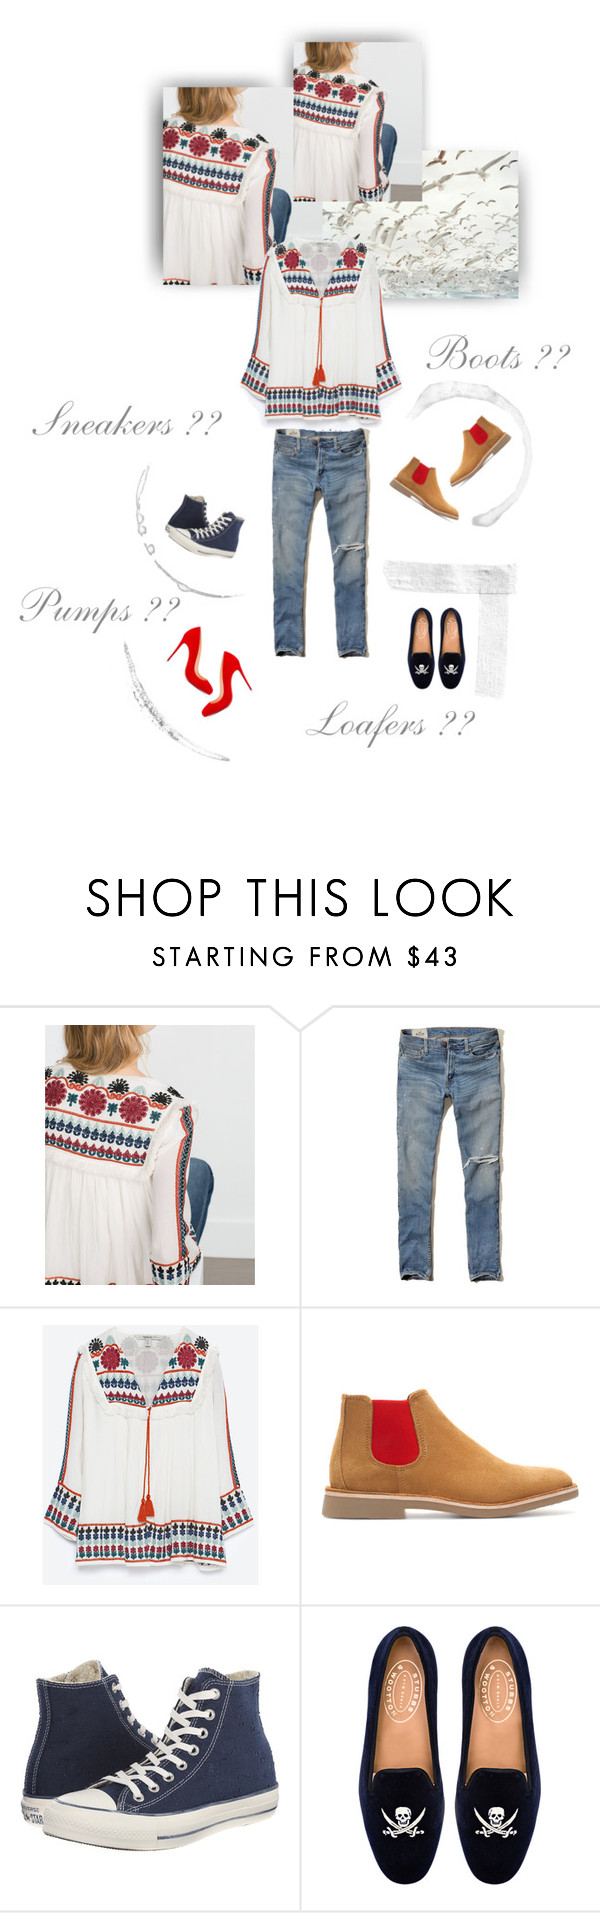 """""""Sneakers;Boots;Loafers or Pumps??????"""" by mycoolestavatar ❤ liked on Polyvore featuring Zara, Hollister Co., Converse, Stubbs & Wootton, Christian Louboutin, women's clothing, women's fashion, women, female and woman"""